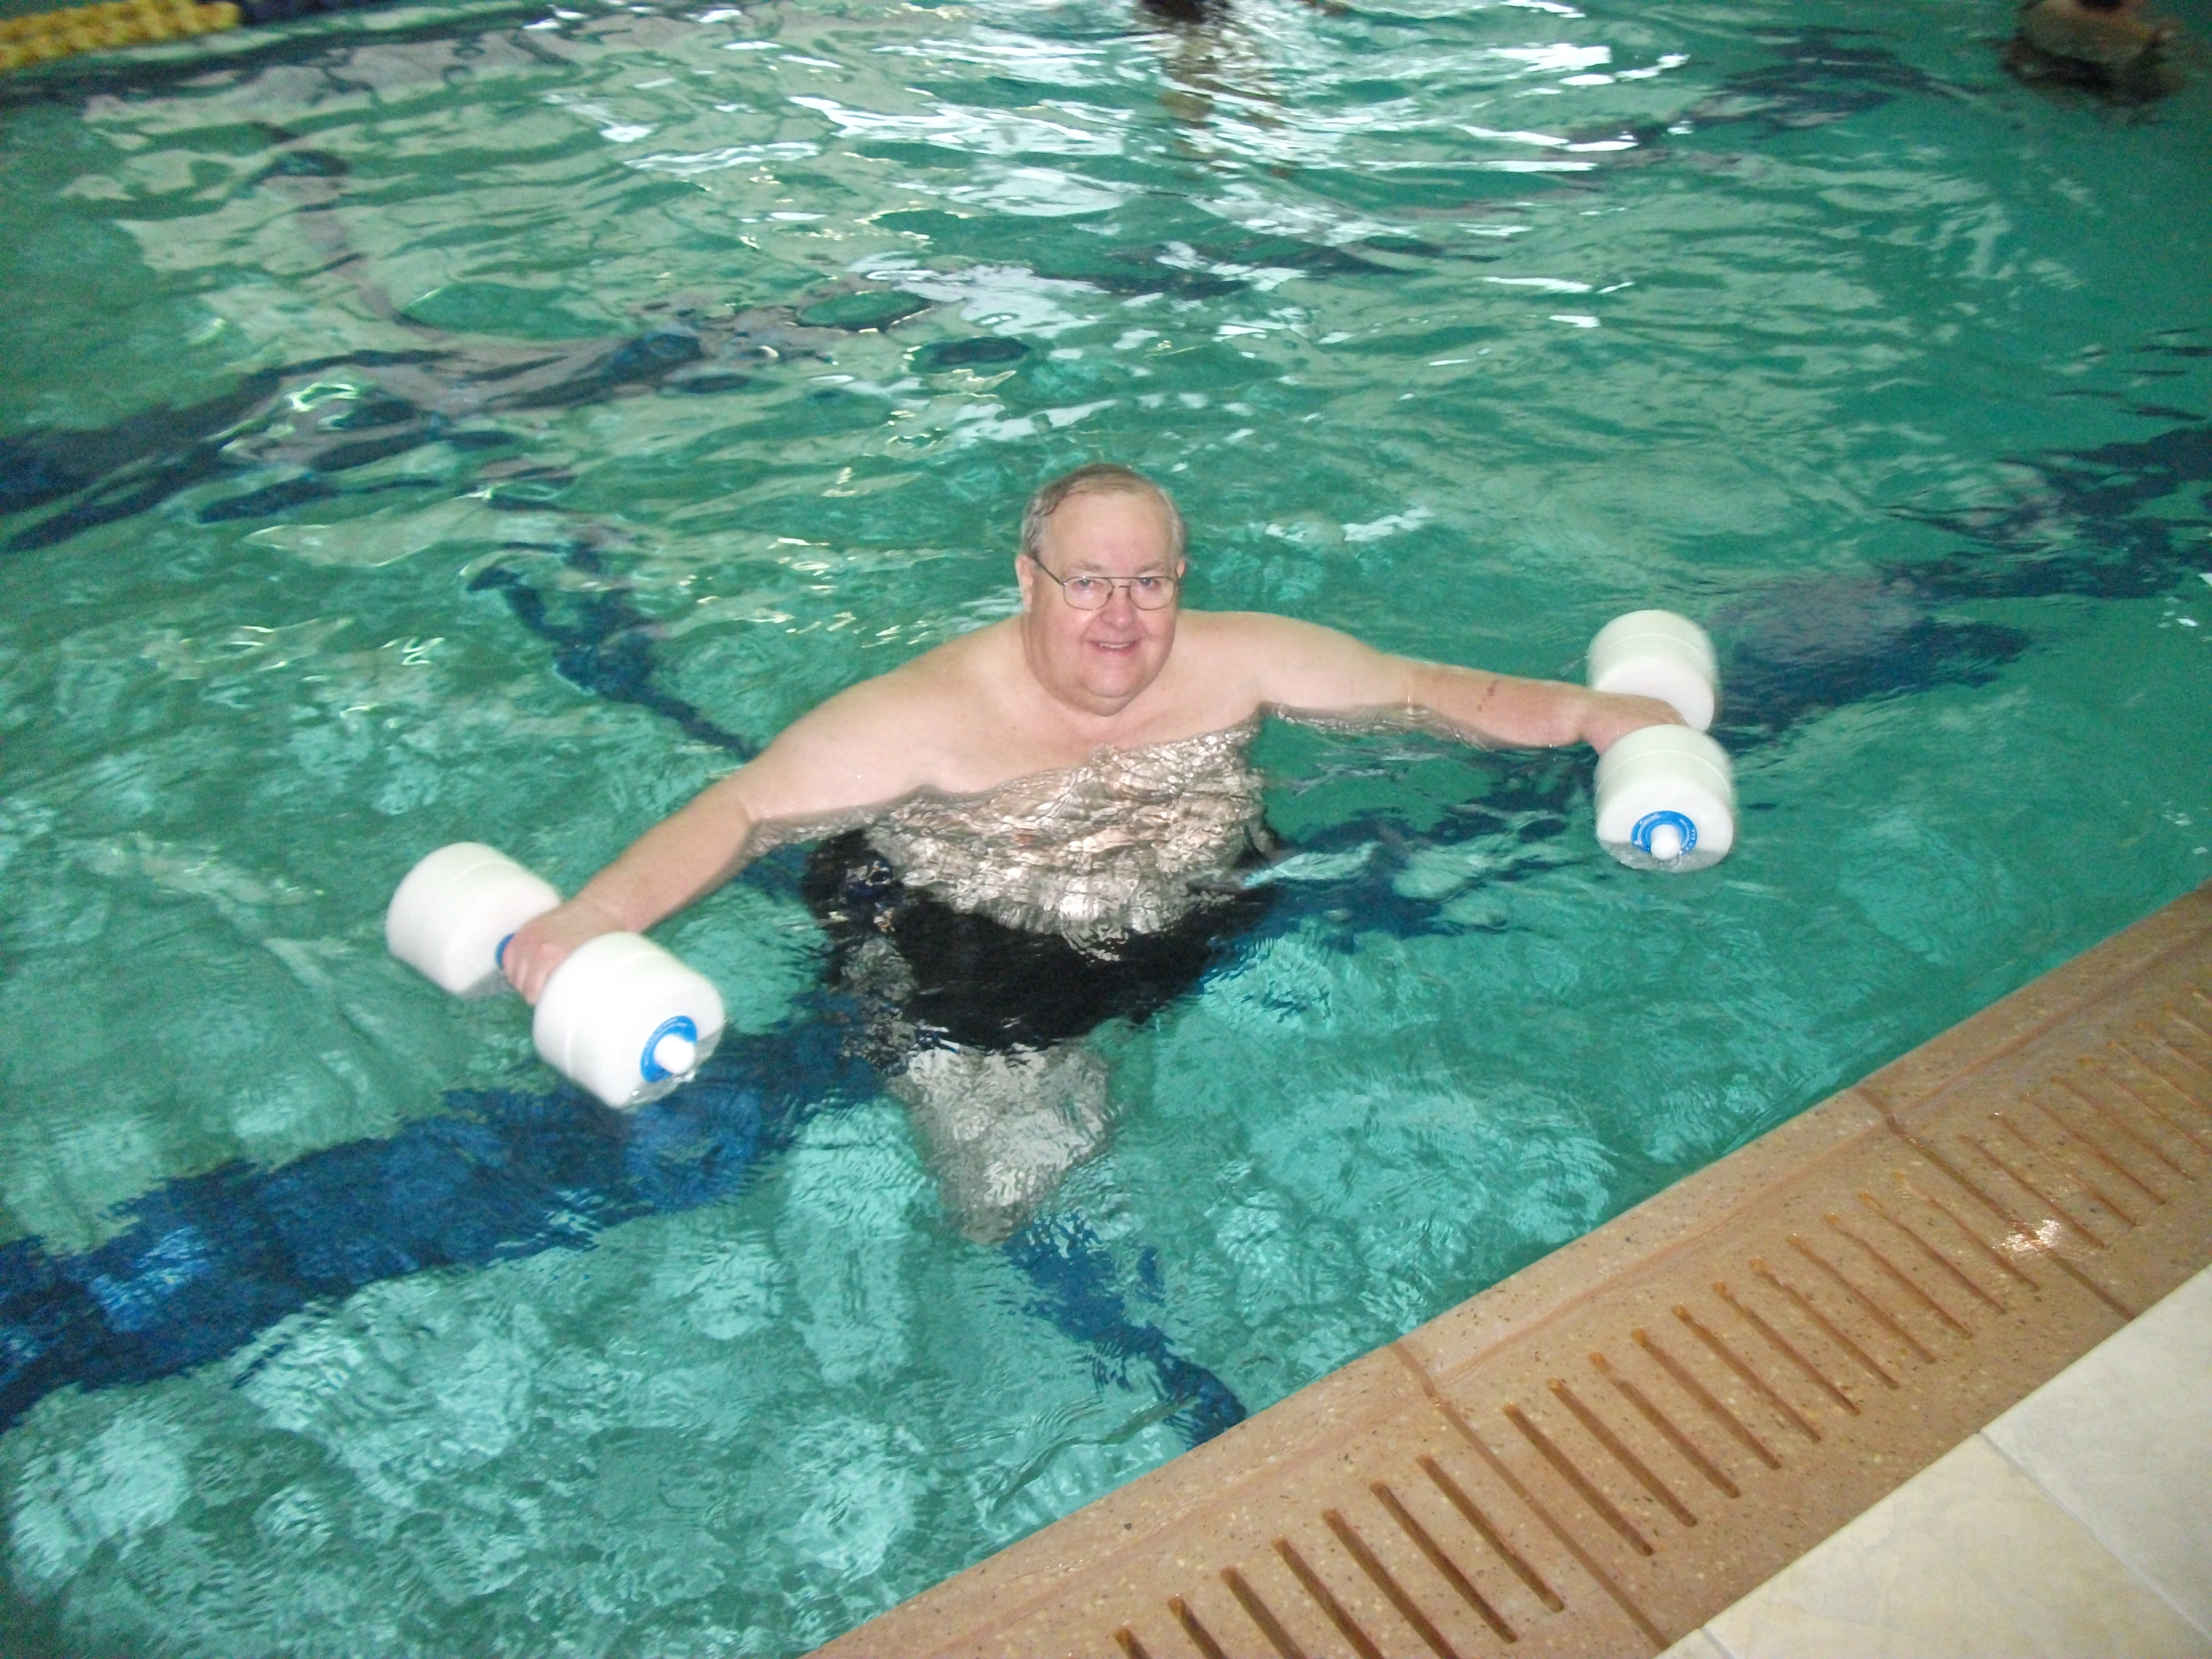 Ed's water workout is safe and effective.